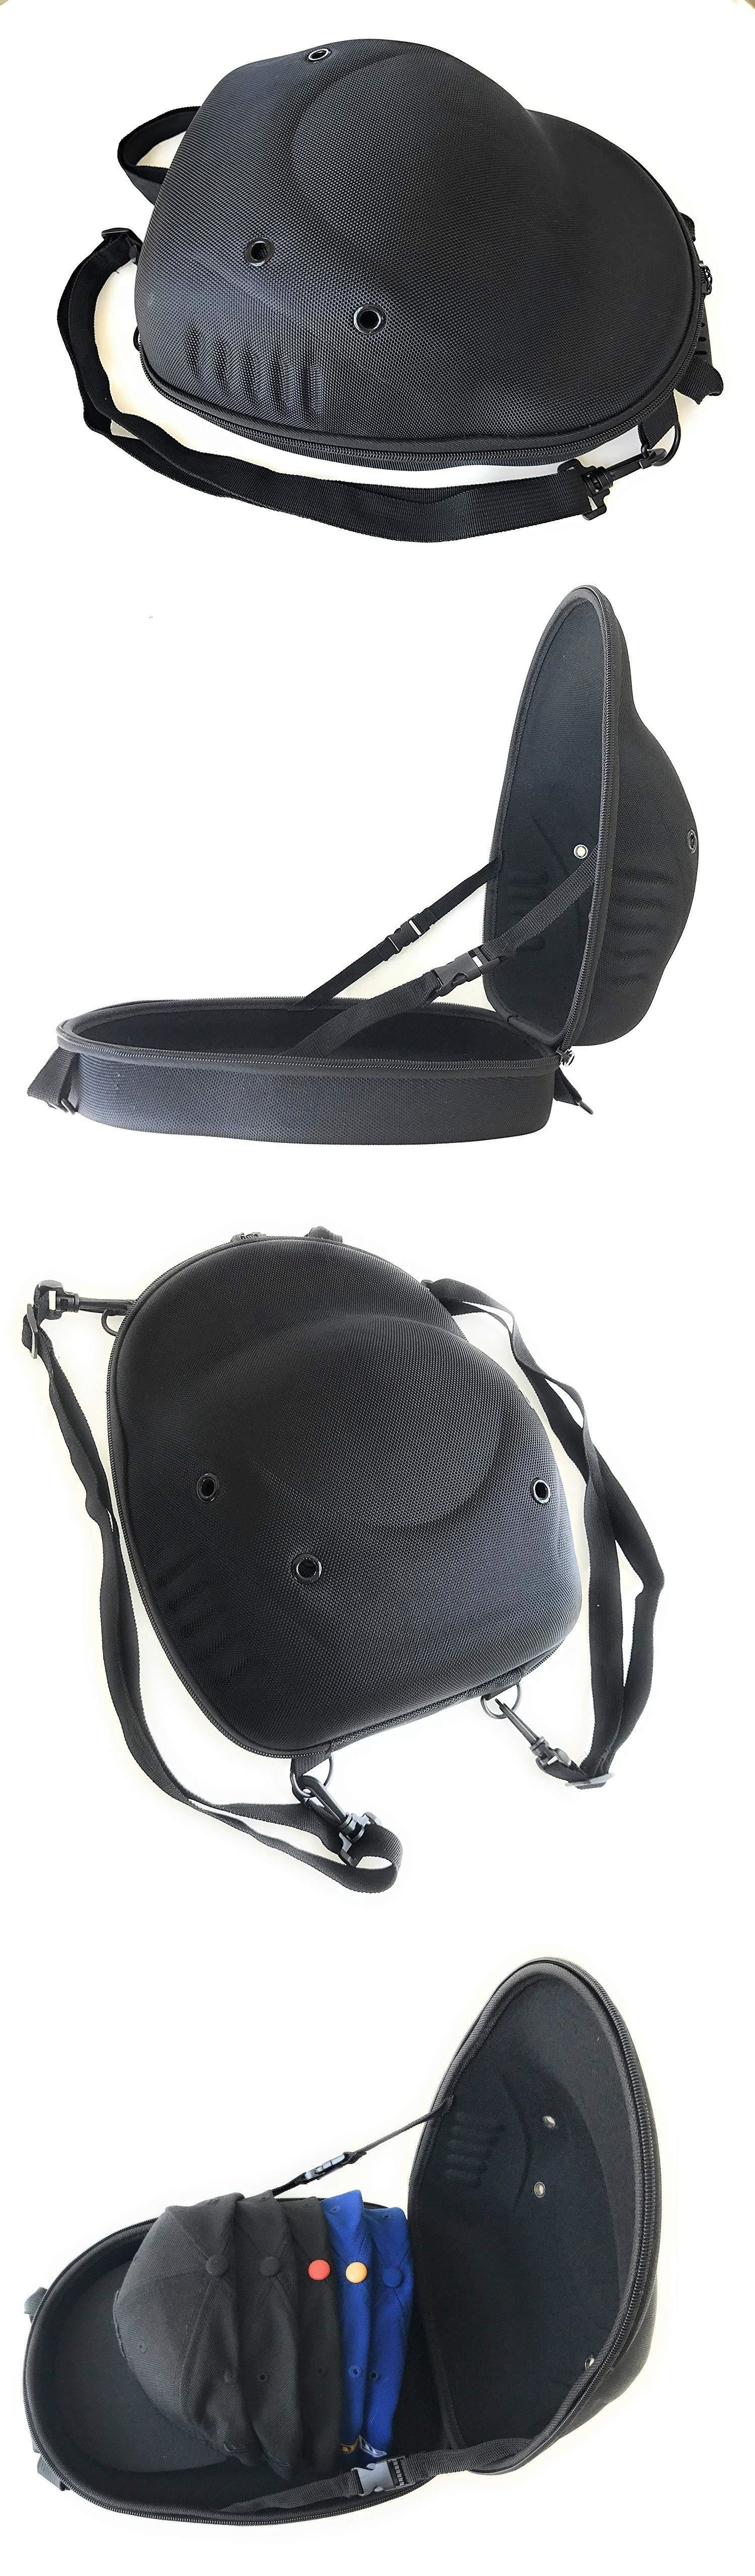 2b074aa7149 Clothing Shoes and Accessories 159052  Portable Hat Carrier Case For Caps  Durable Snapback Hat Carrier Caps Storage -  BUY IT NOW ONLY   25.99 on   eBay ...